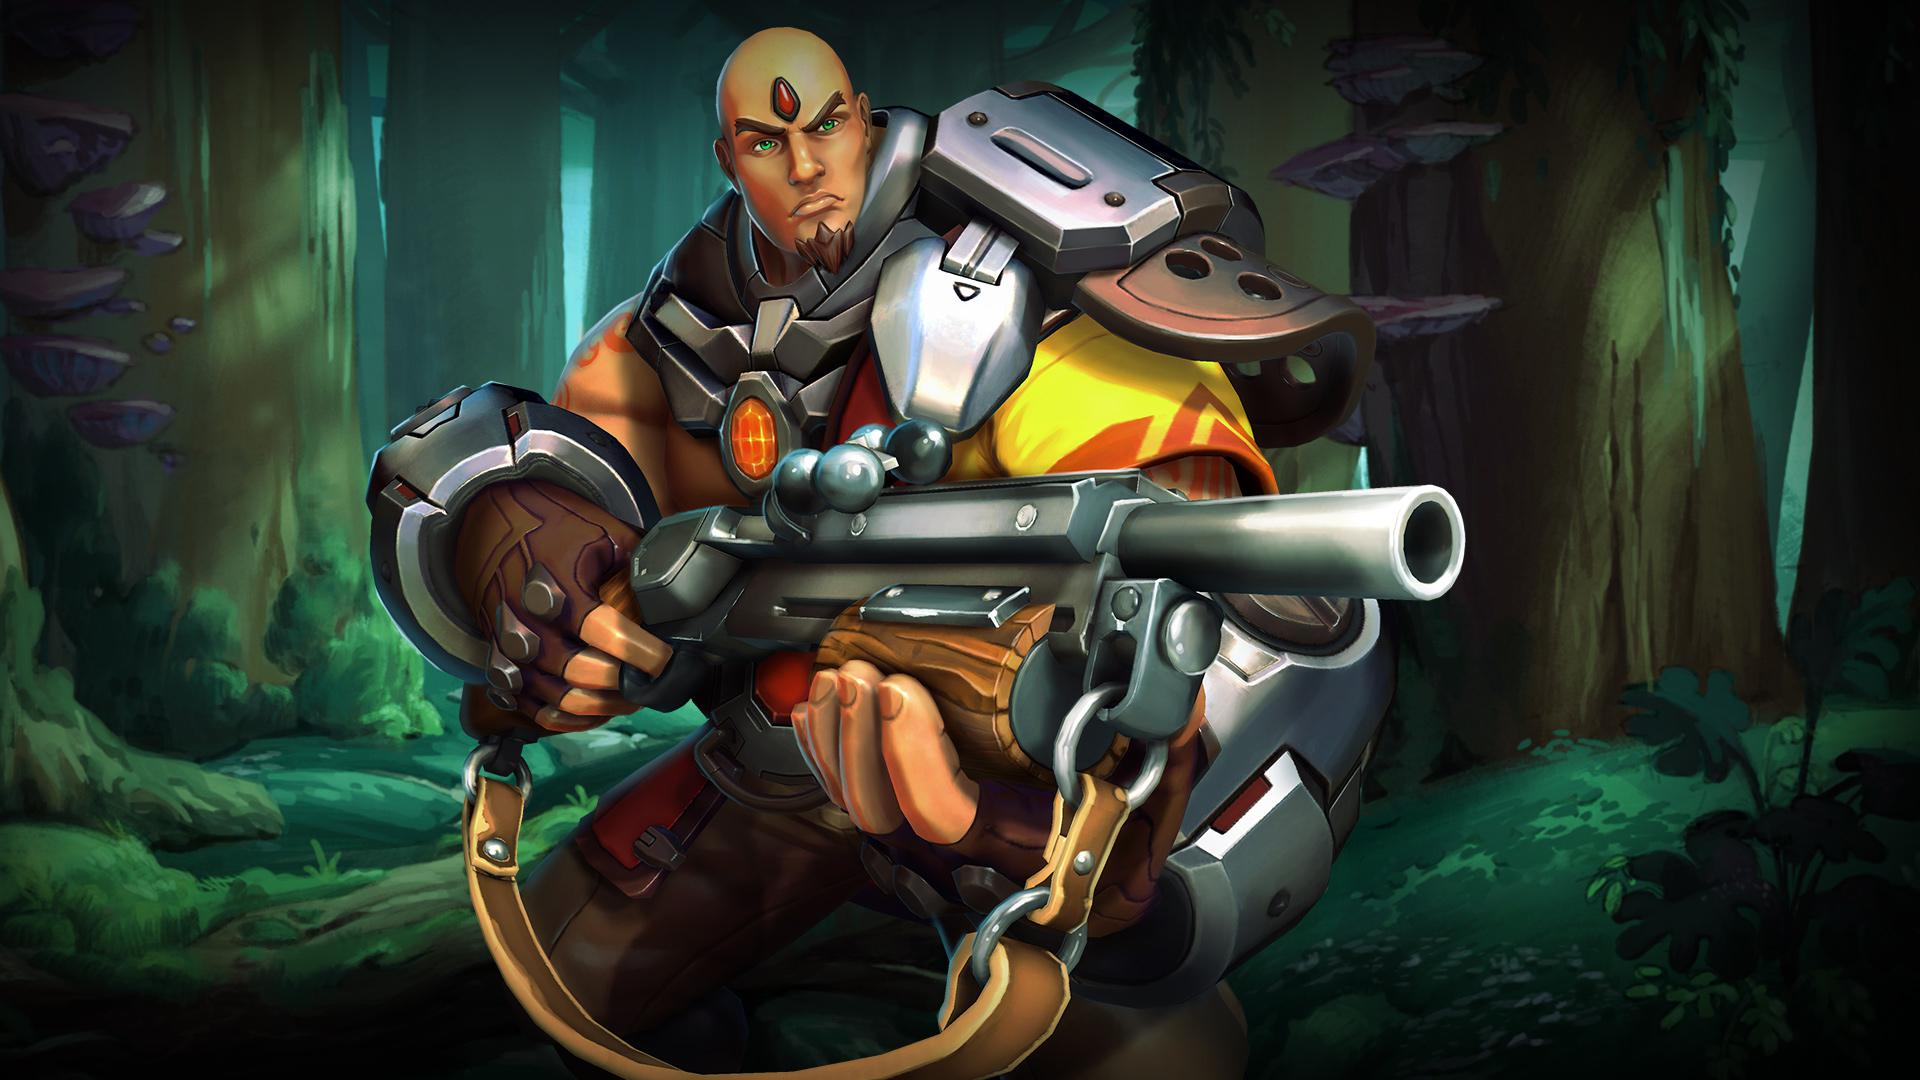 Paladins To Get Battle Royale Game Mode New Playable Character